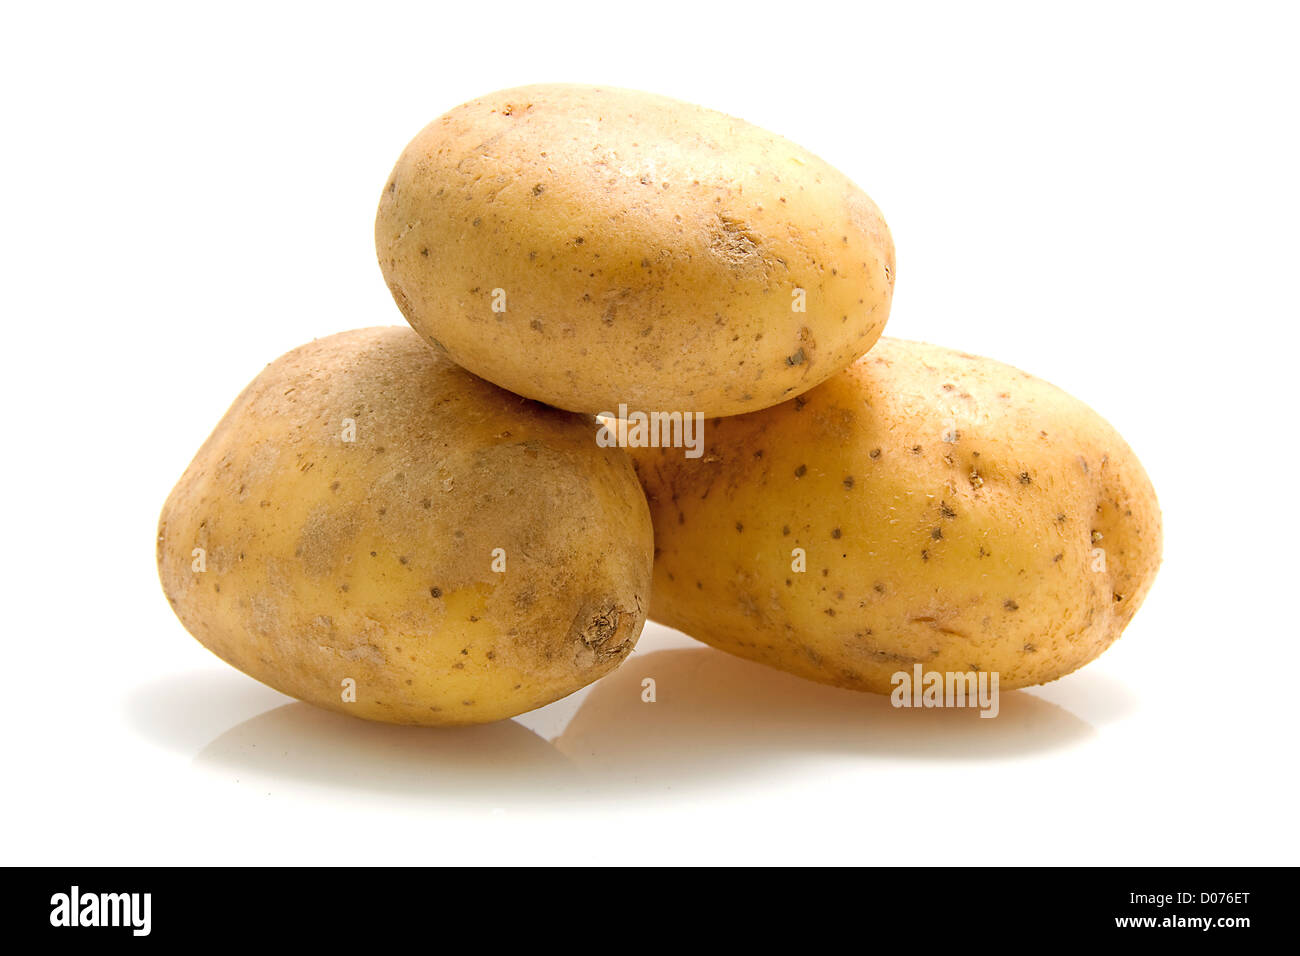 Stack of three unpeeled potatoes isolated on white background - Stock Image